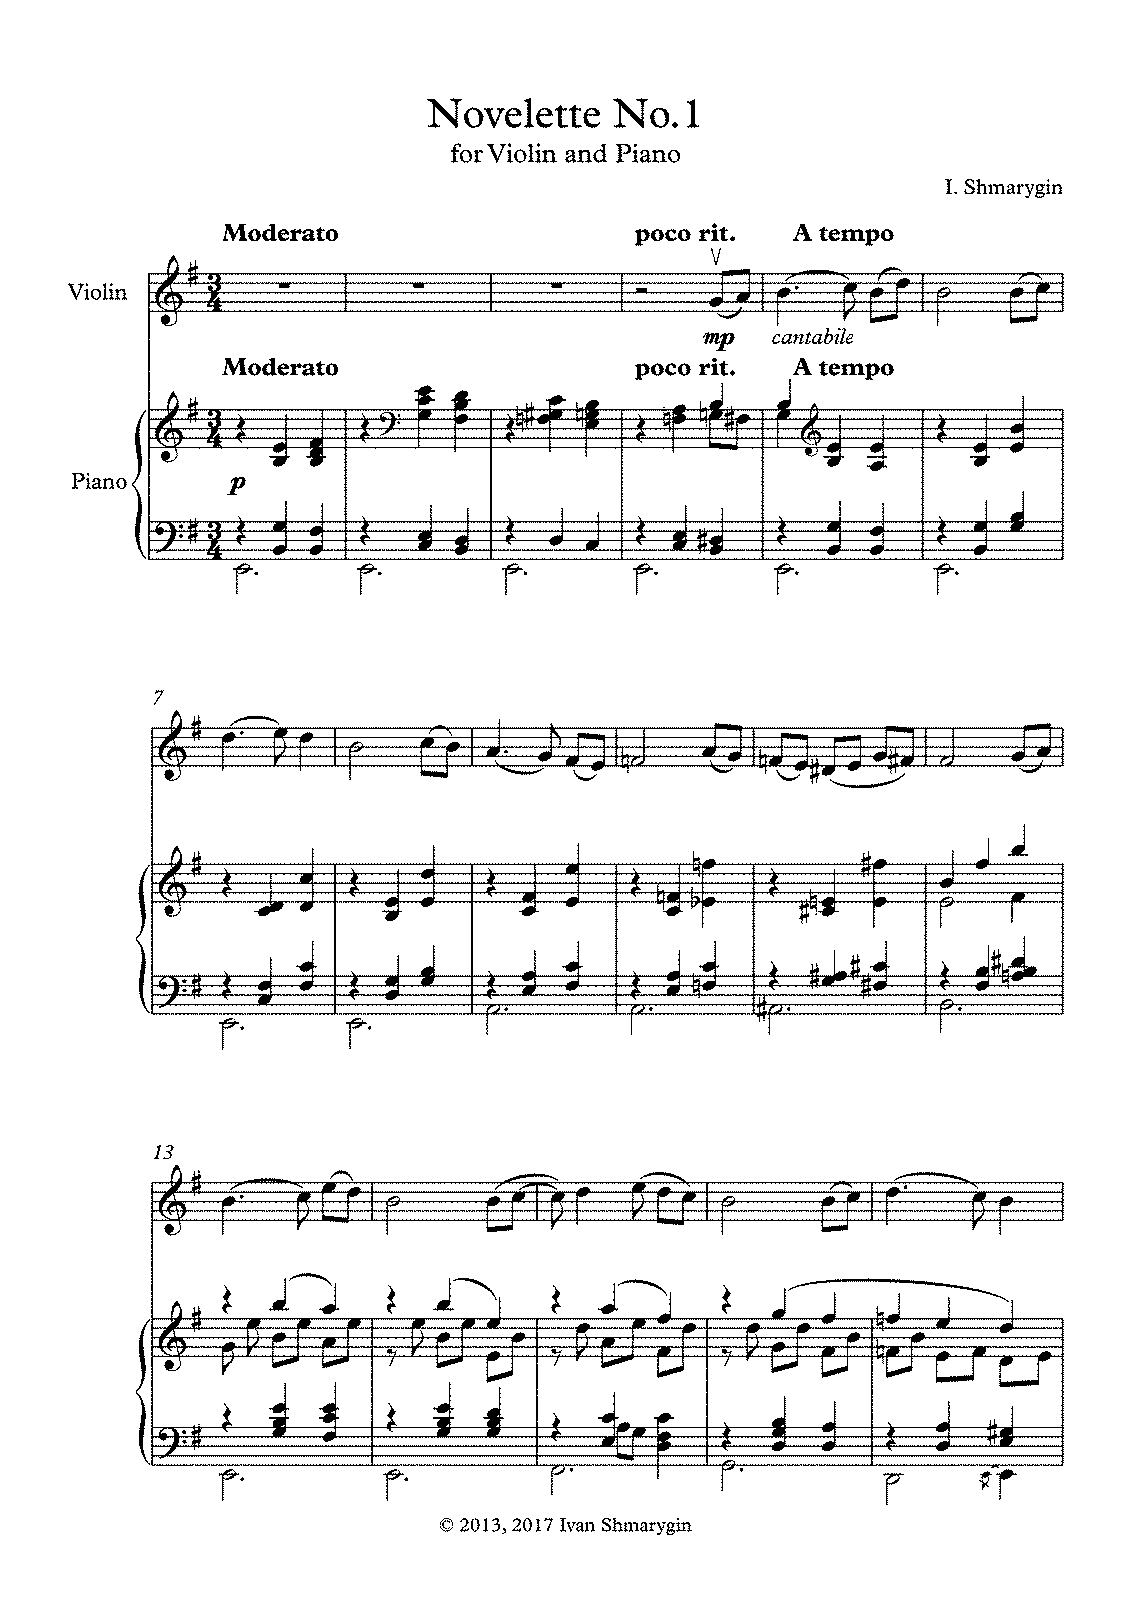 PMLP613417-Shmarygin-Novelette for Violin and Piano No.1.pdf